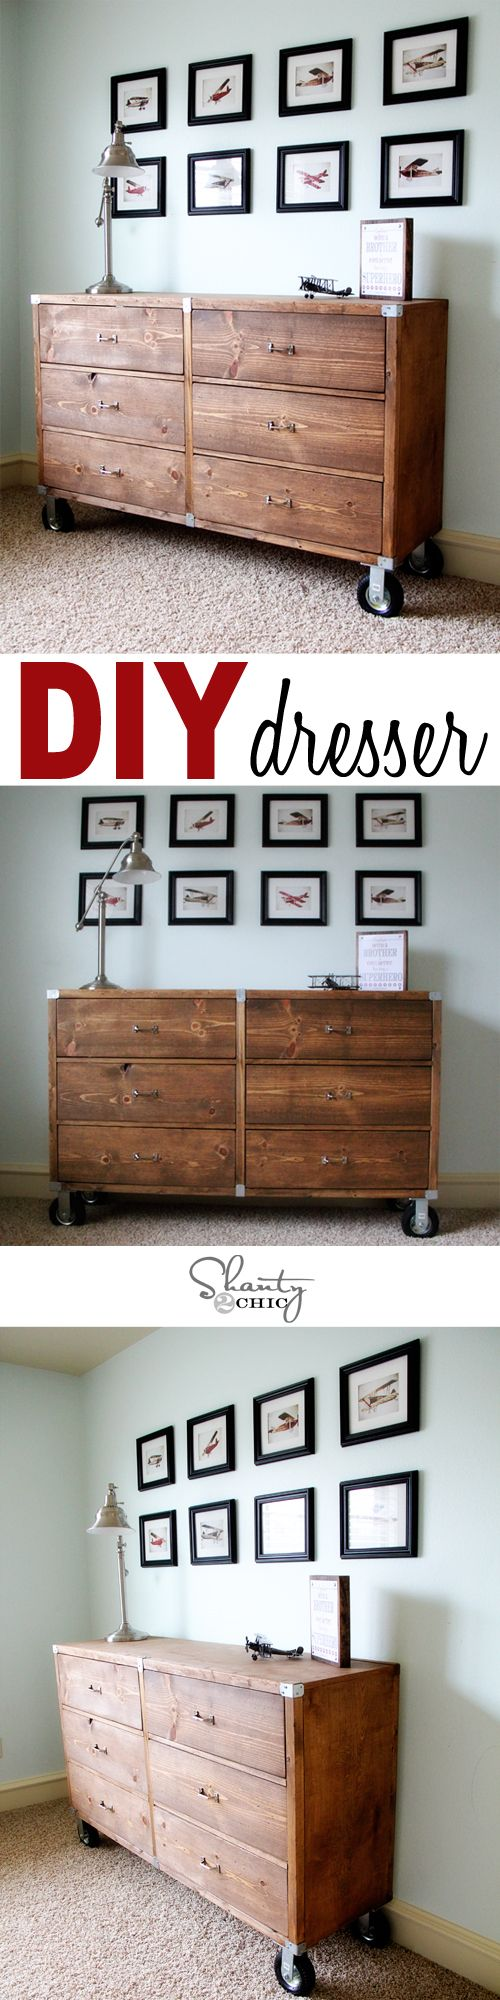 DIY Dresser at Shanty-2-Chic.com ... havent found what im looking for in my budget so this may be the solution-DIY! :)